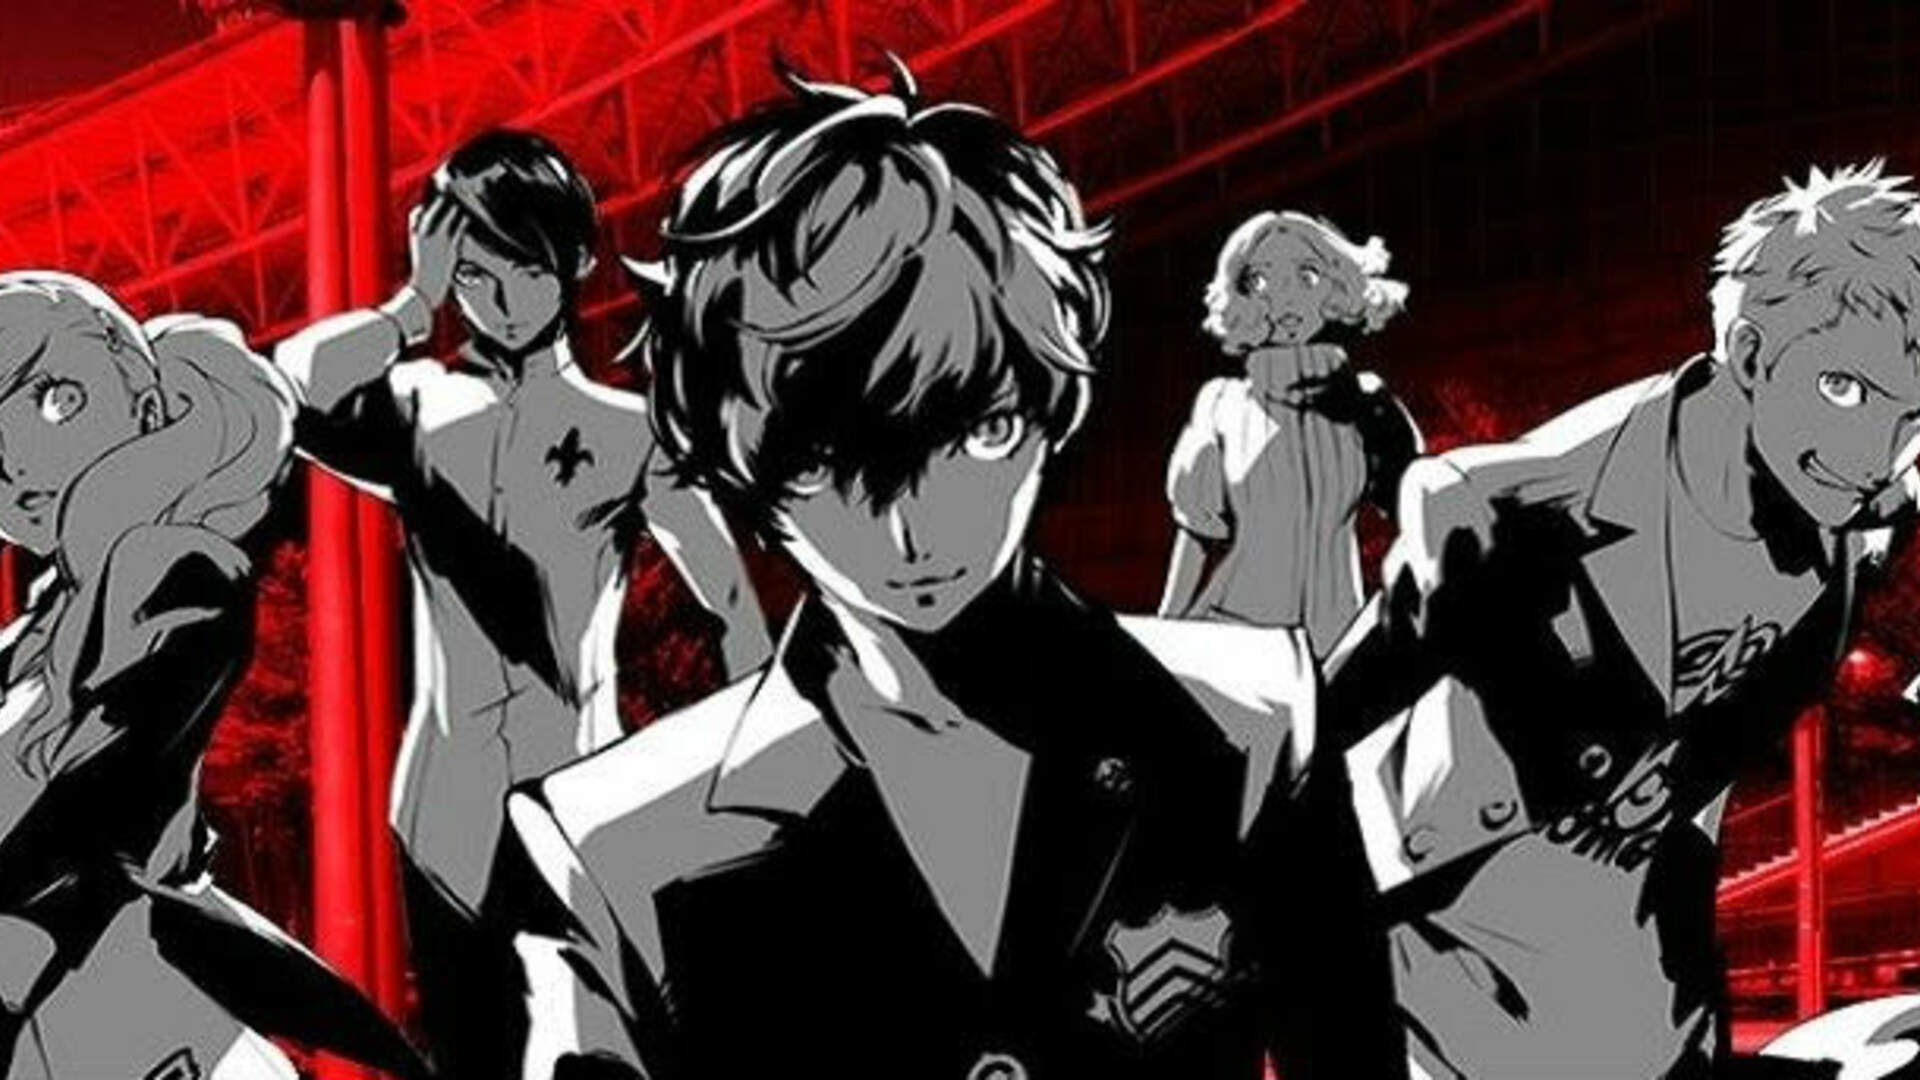 Insert Coin Teasing New Persona 5 Clothing Range